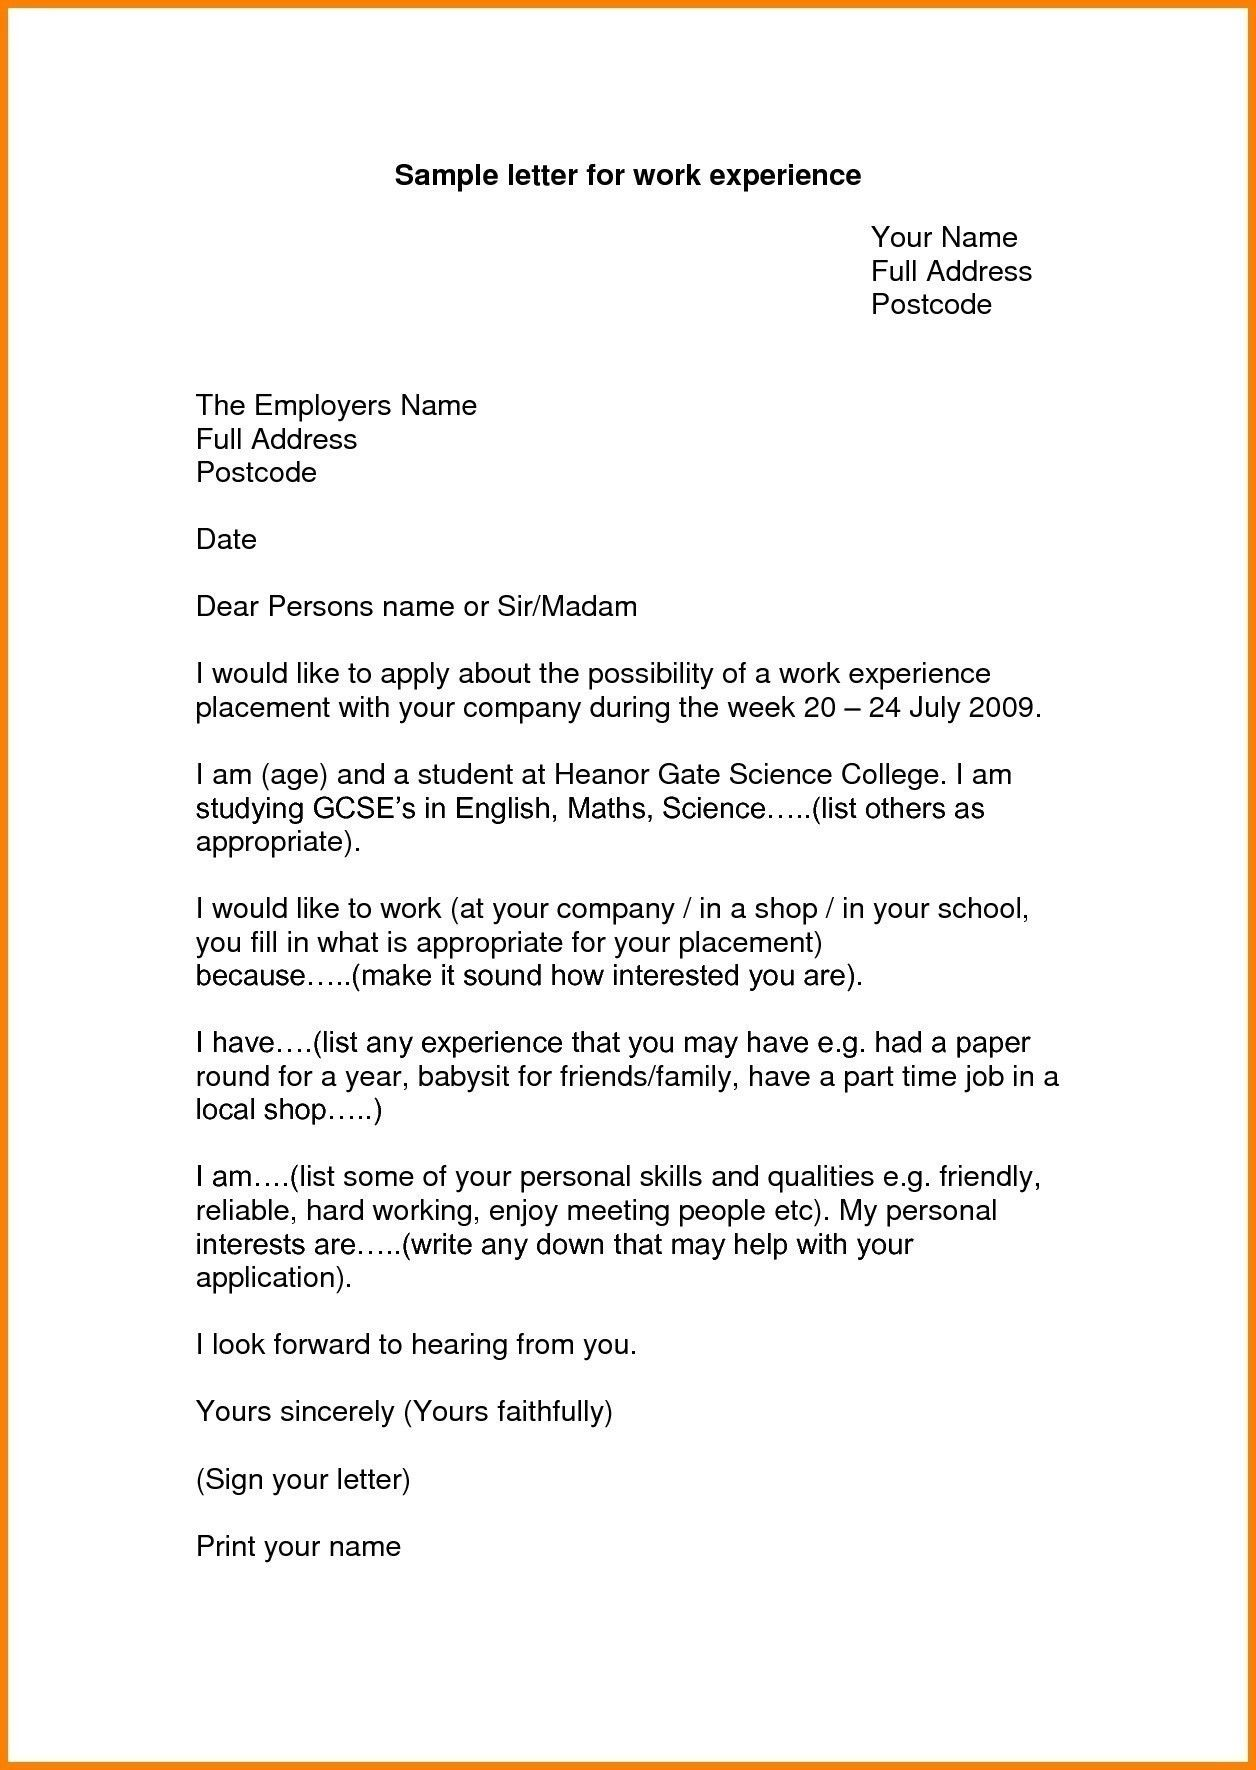 example letter for application for it work experience